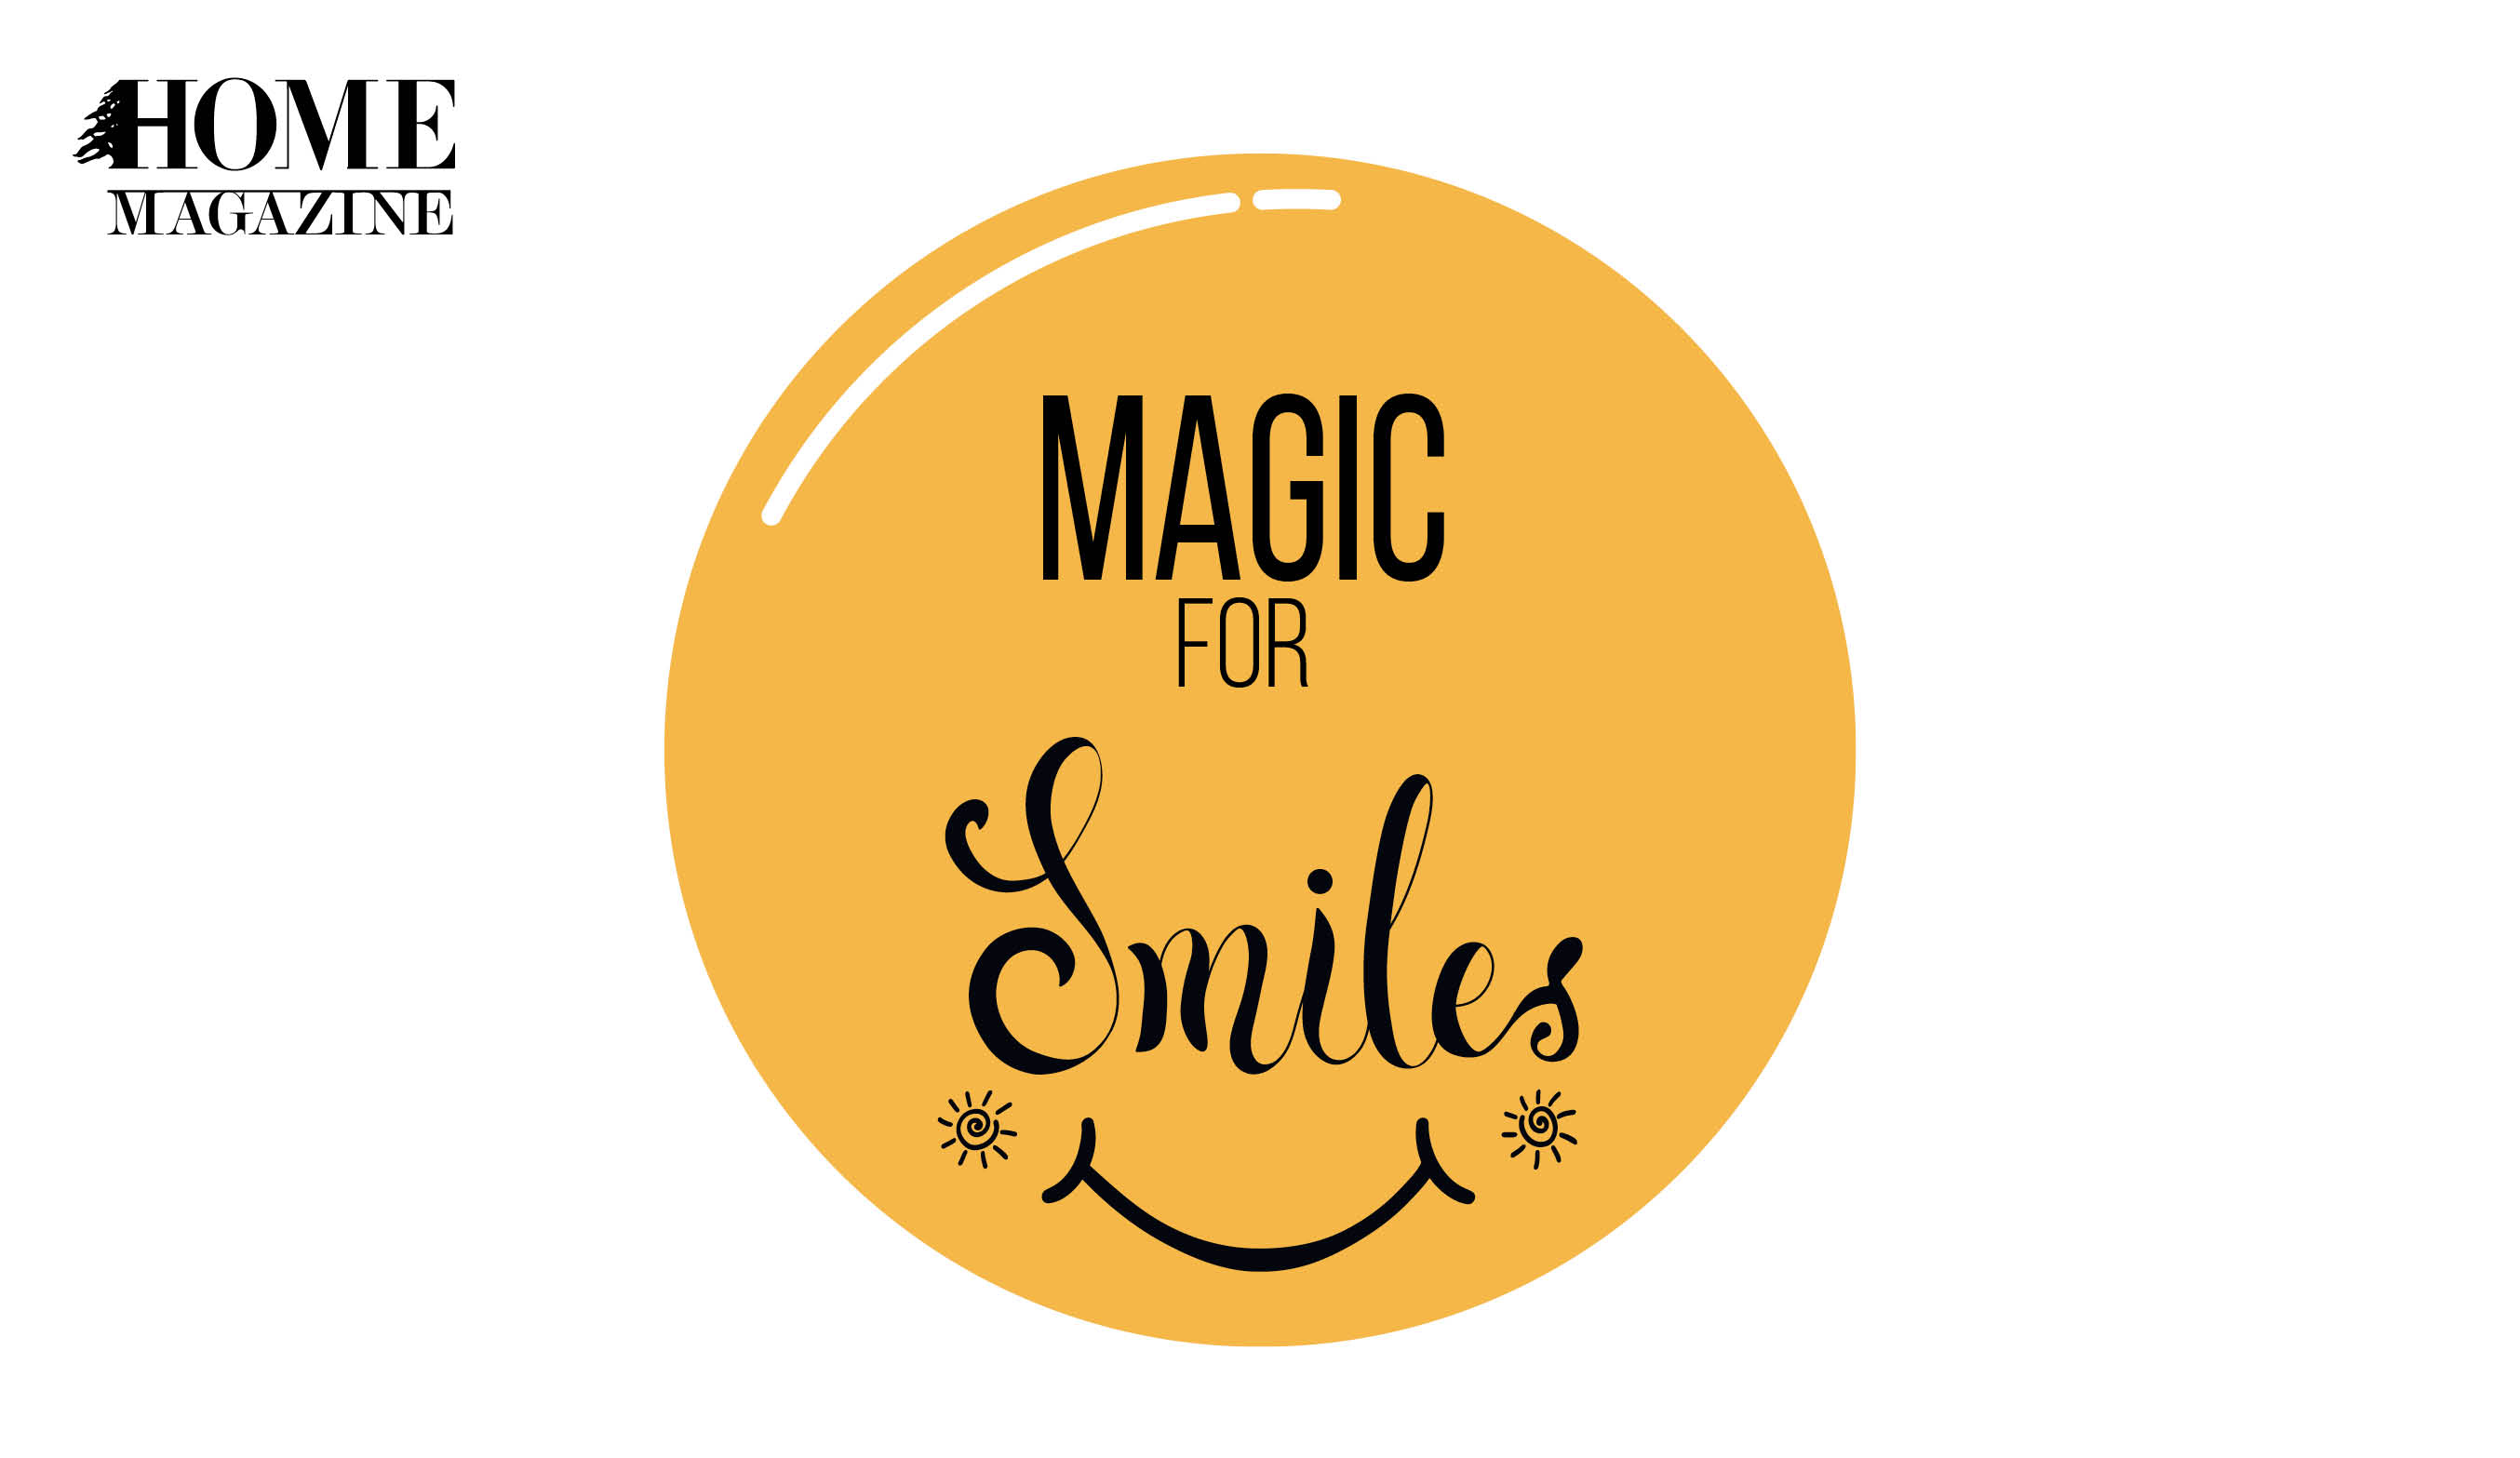 Magic for Smiles text in yellow circle